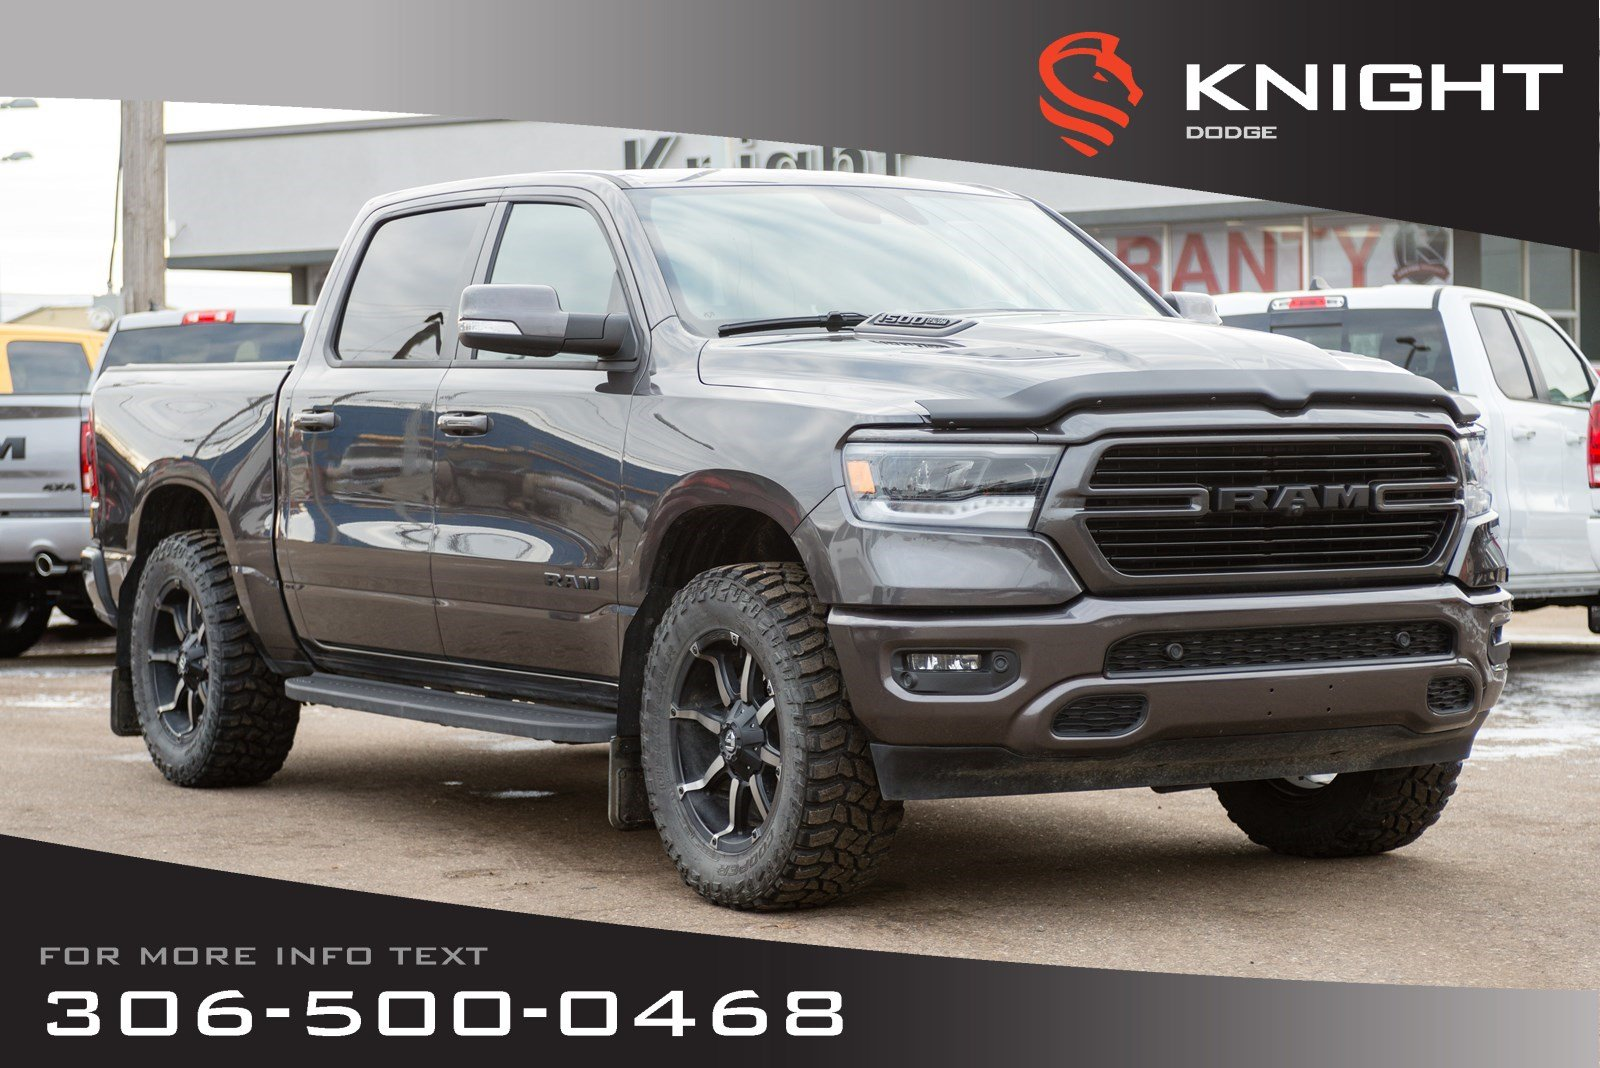 Pre-Owned 2019 Ram 1500 Sport Crew Cab - Pricing is with all the great adds